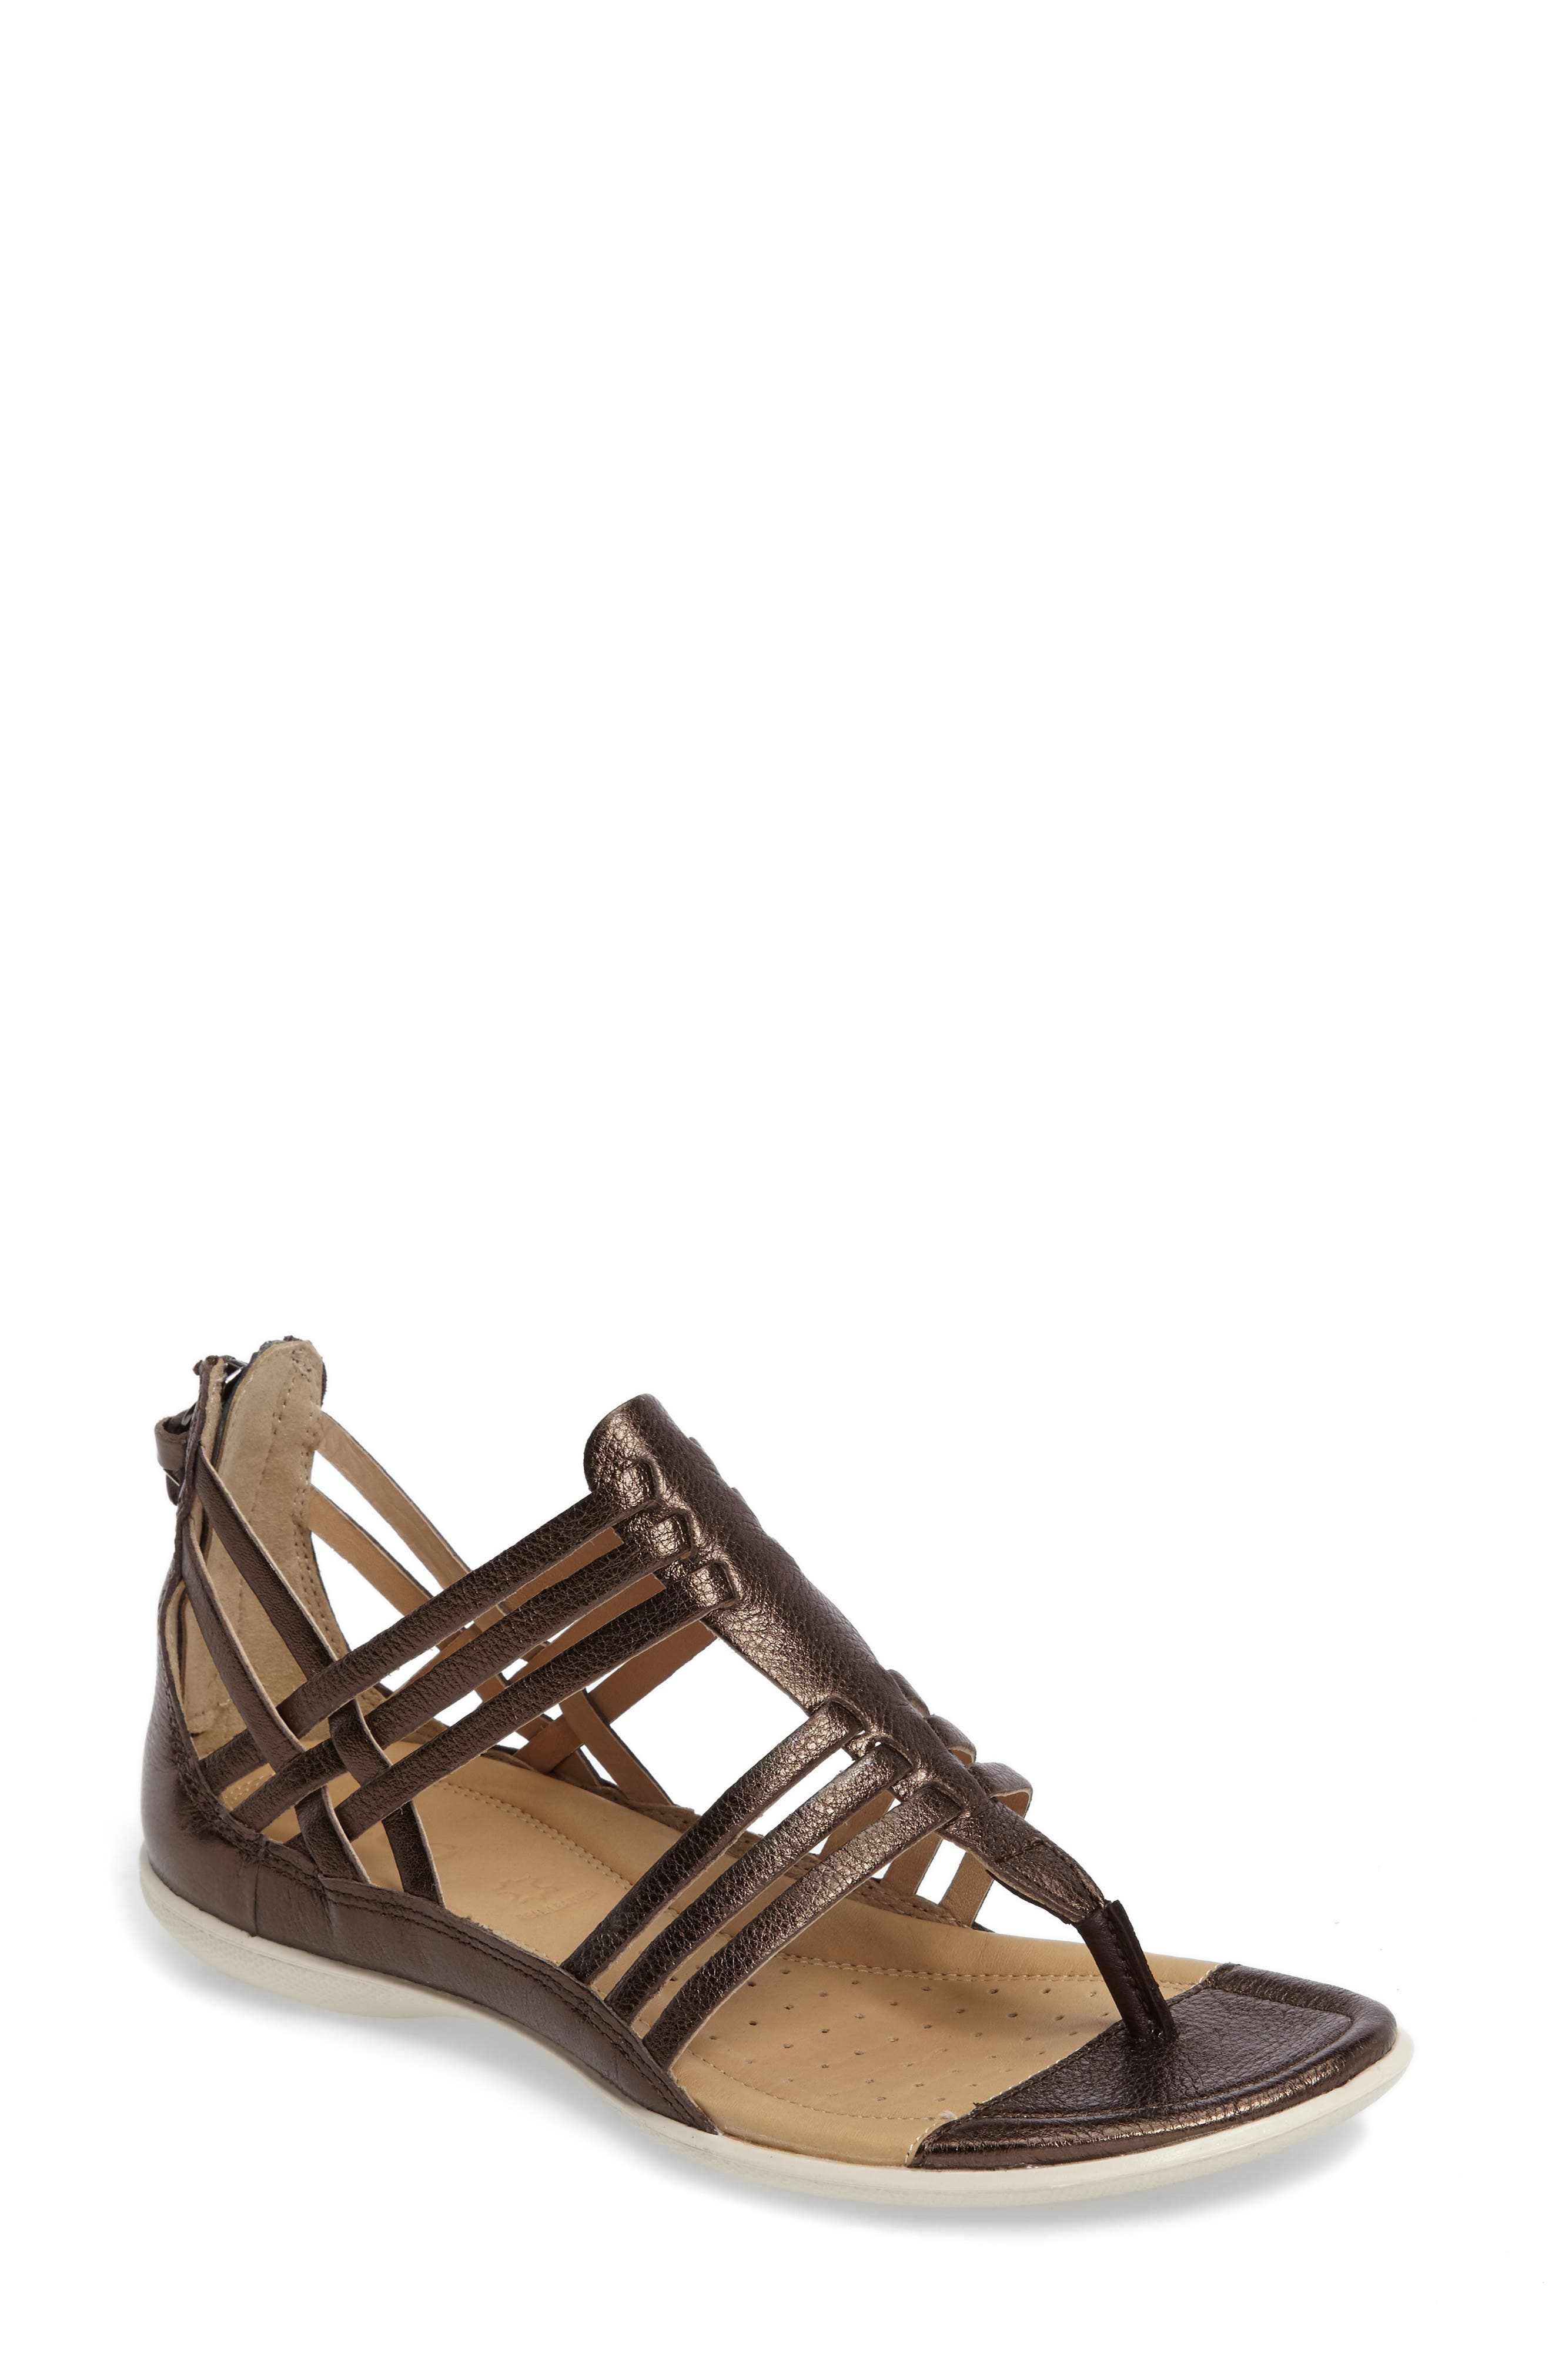 Flash Sandal,                         Main,                         color, 201